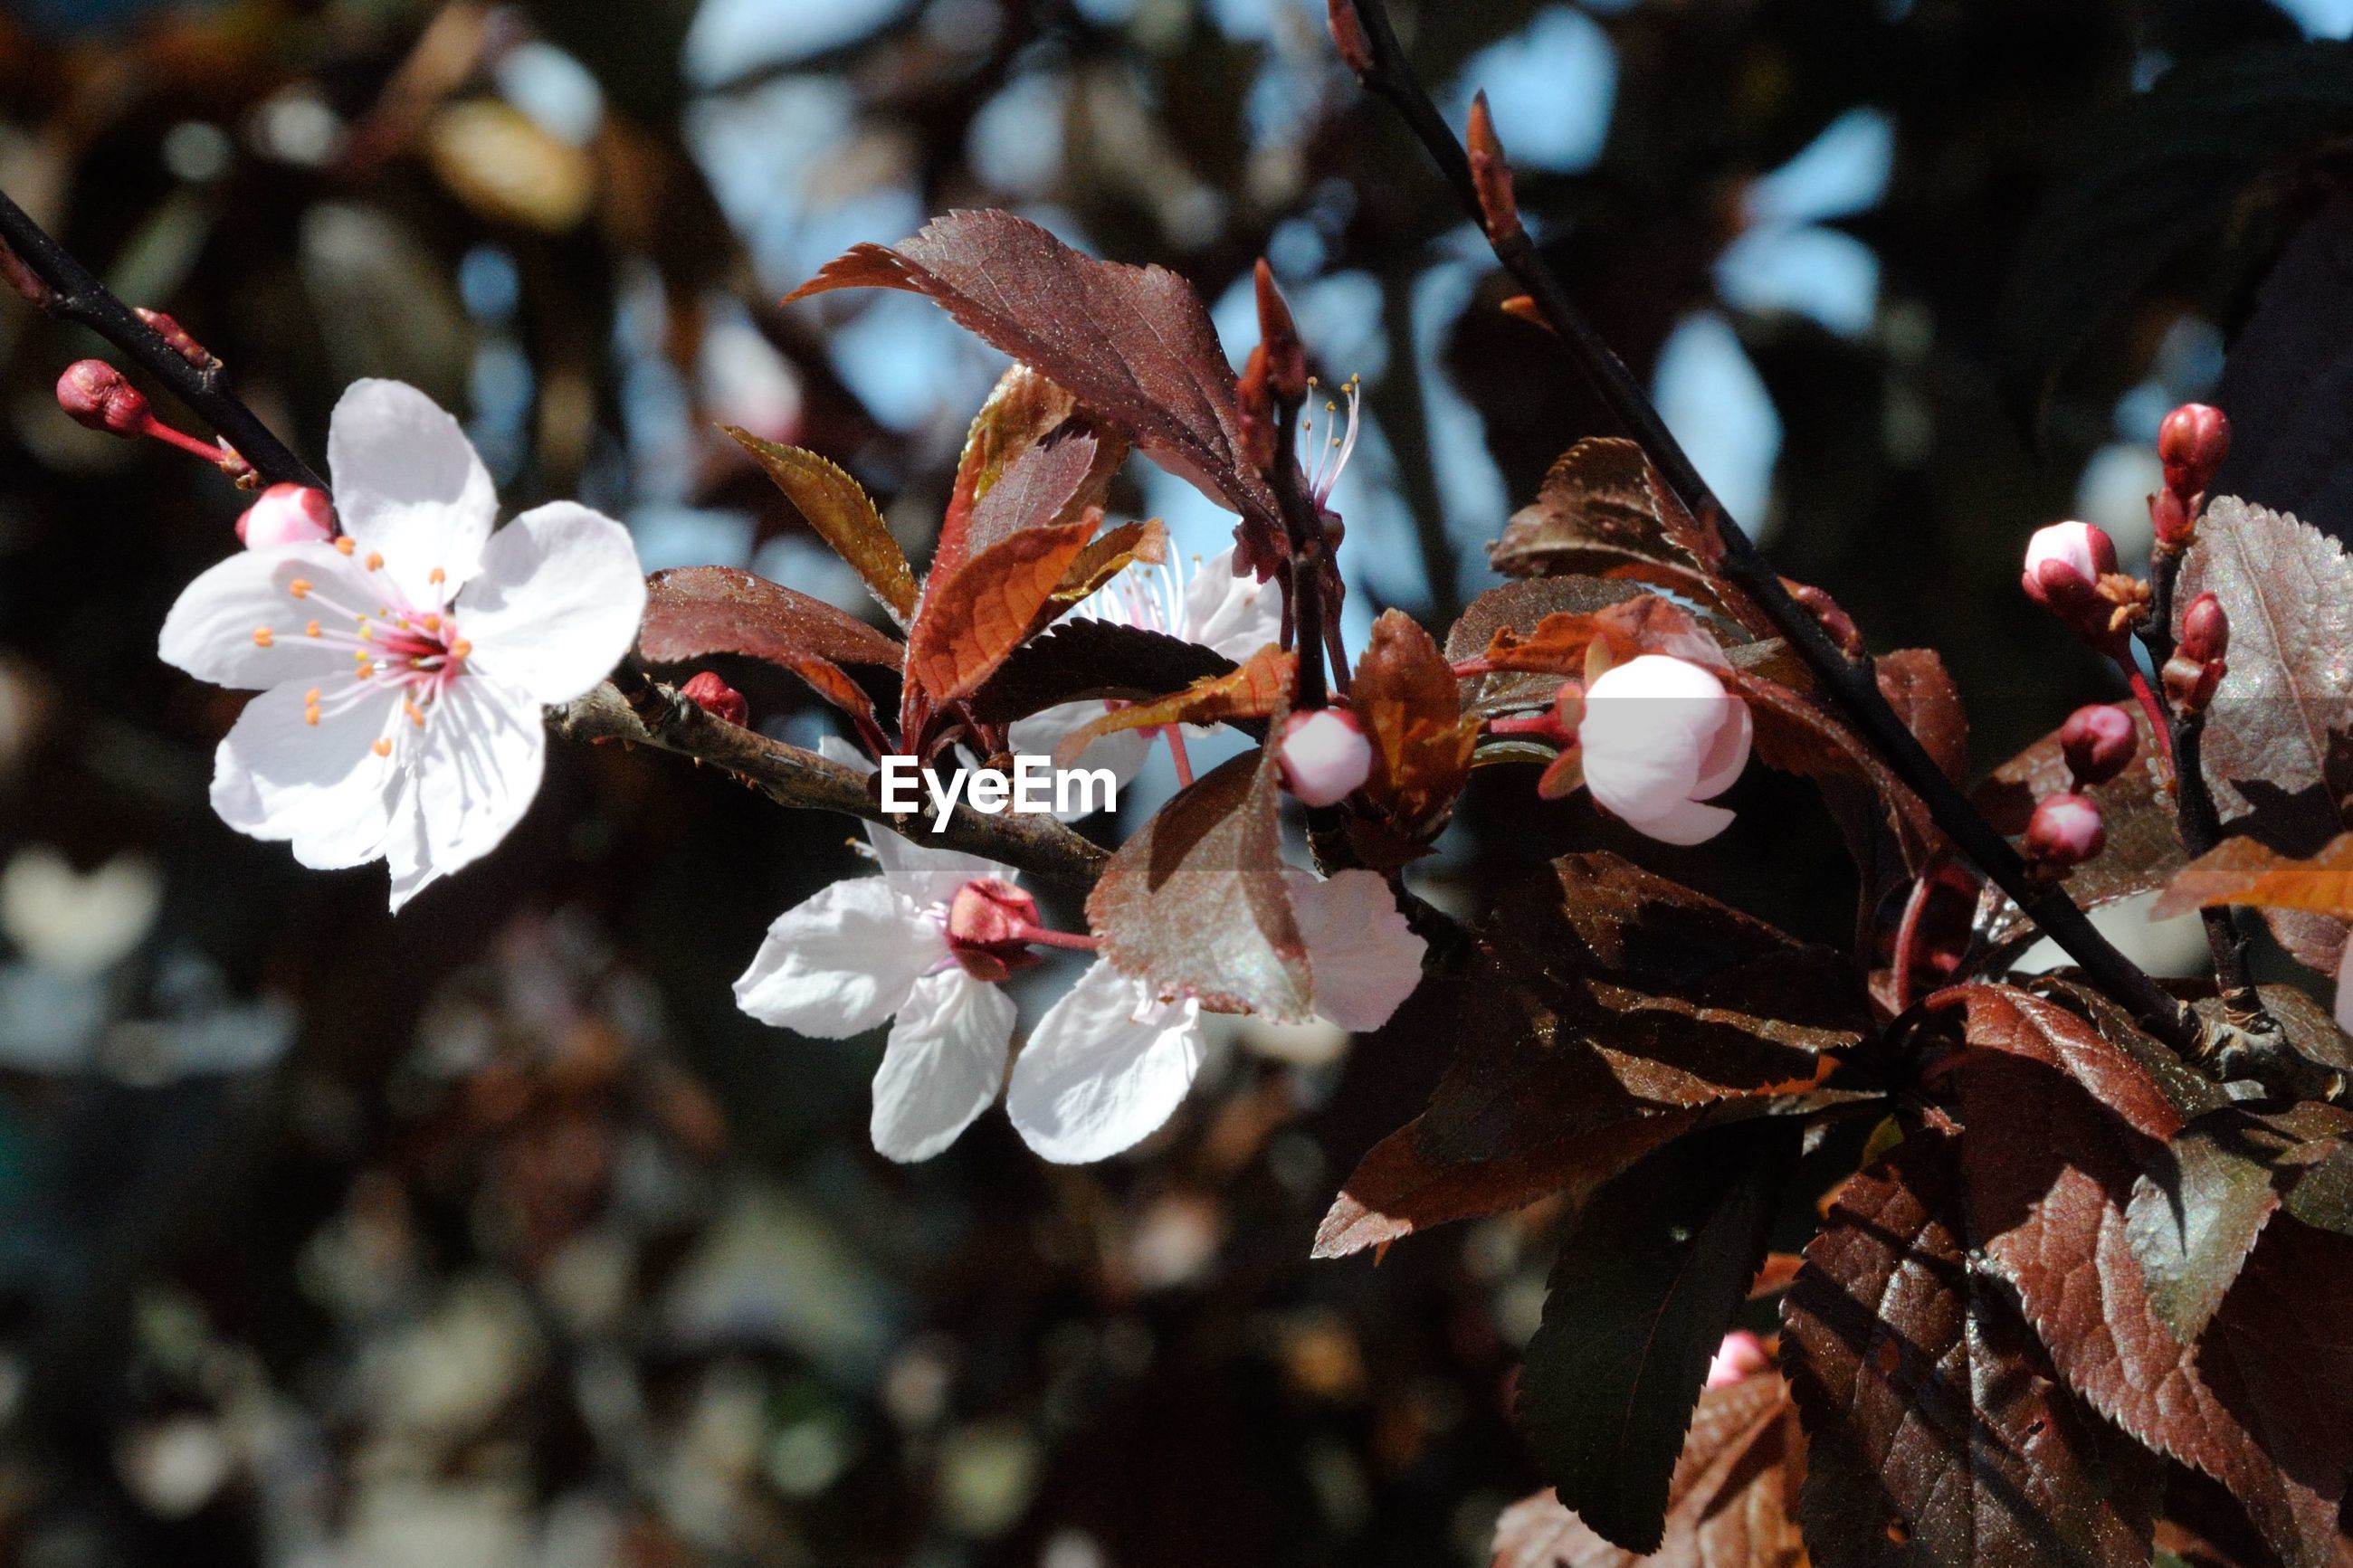 flower, fragility, freshness, petal, branch, growth, close-up, twig, beauty in nature, nature, focus on foreground, cherry blossom, blossom, tree, white color, in bloom, fruit tree, flower head, stamen, springtime